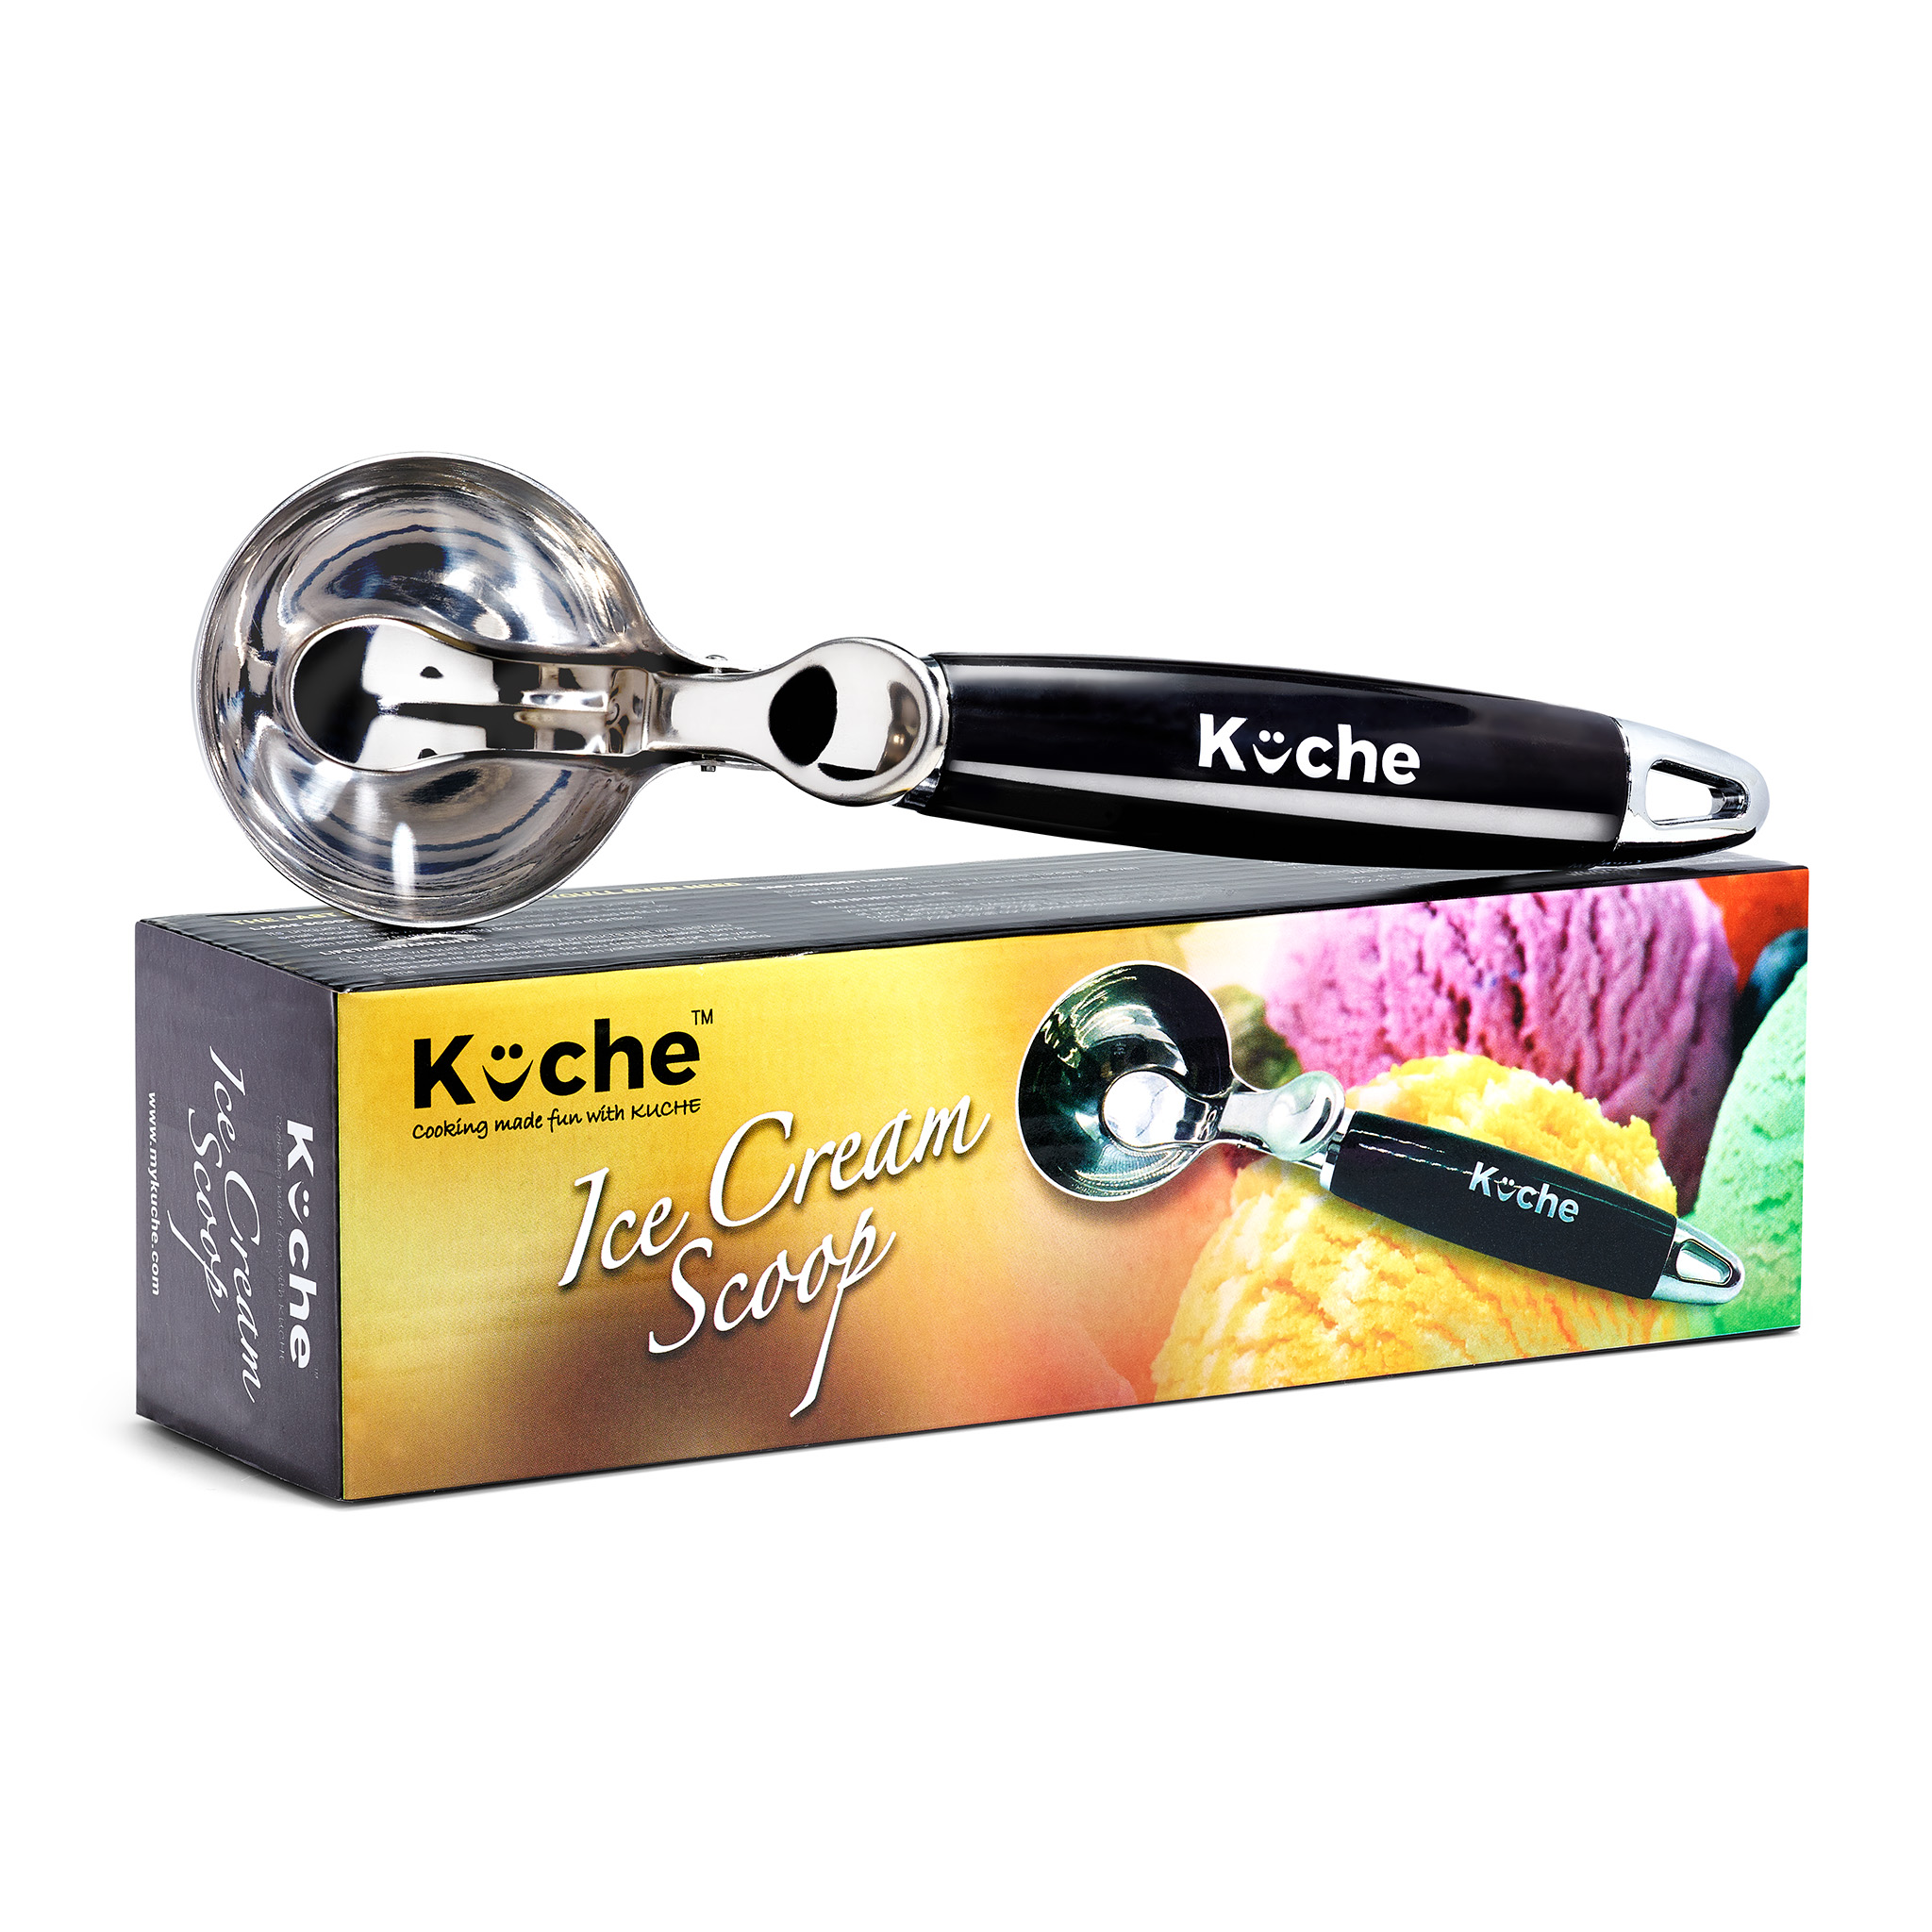 KUCHE All Ease Stainless Steel Ice Cream Scoop with Easy Trigger and Easy Clean Large (BLACK) by Kuche